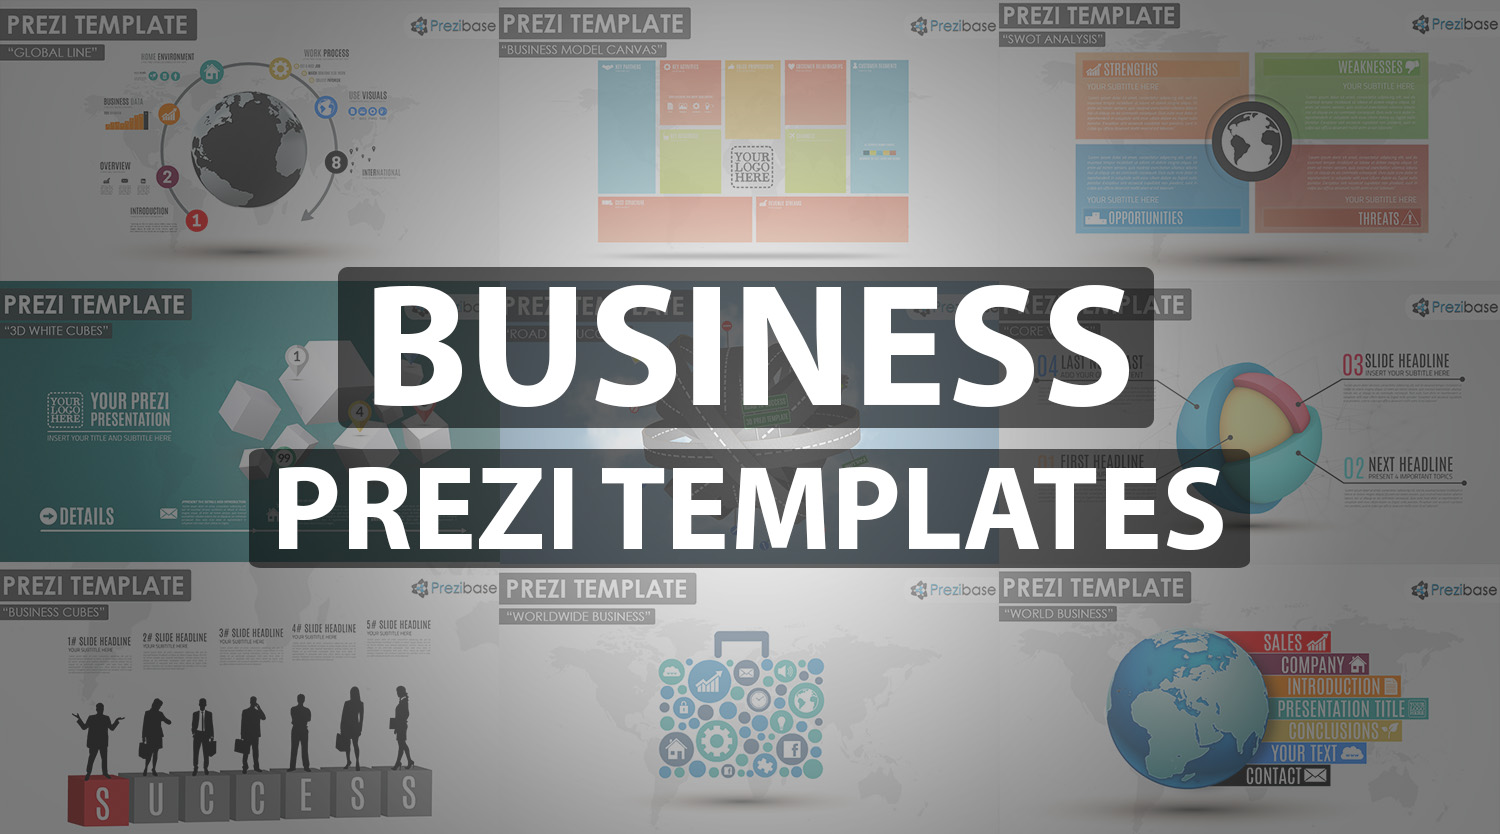 business-company-professional-prezi-temp